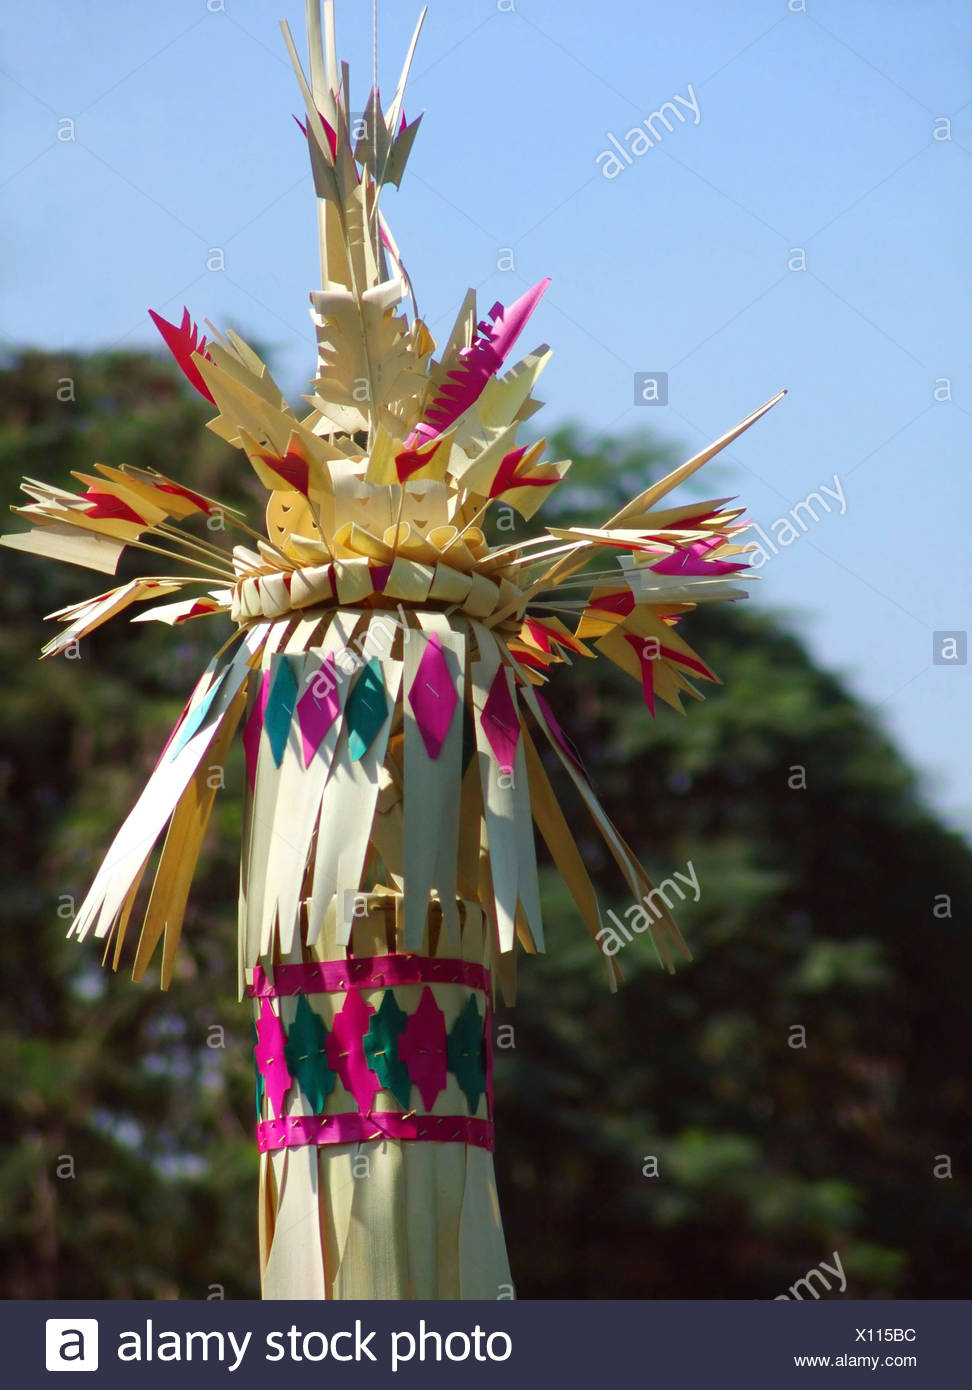 colorful Balinese ceremonial temple decoration, Indonesia, Bali - Stock Image